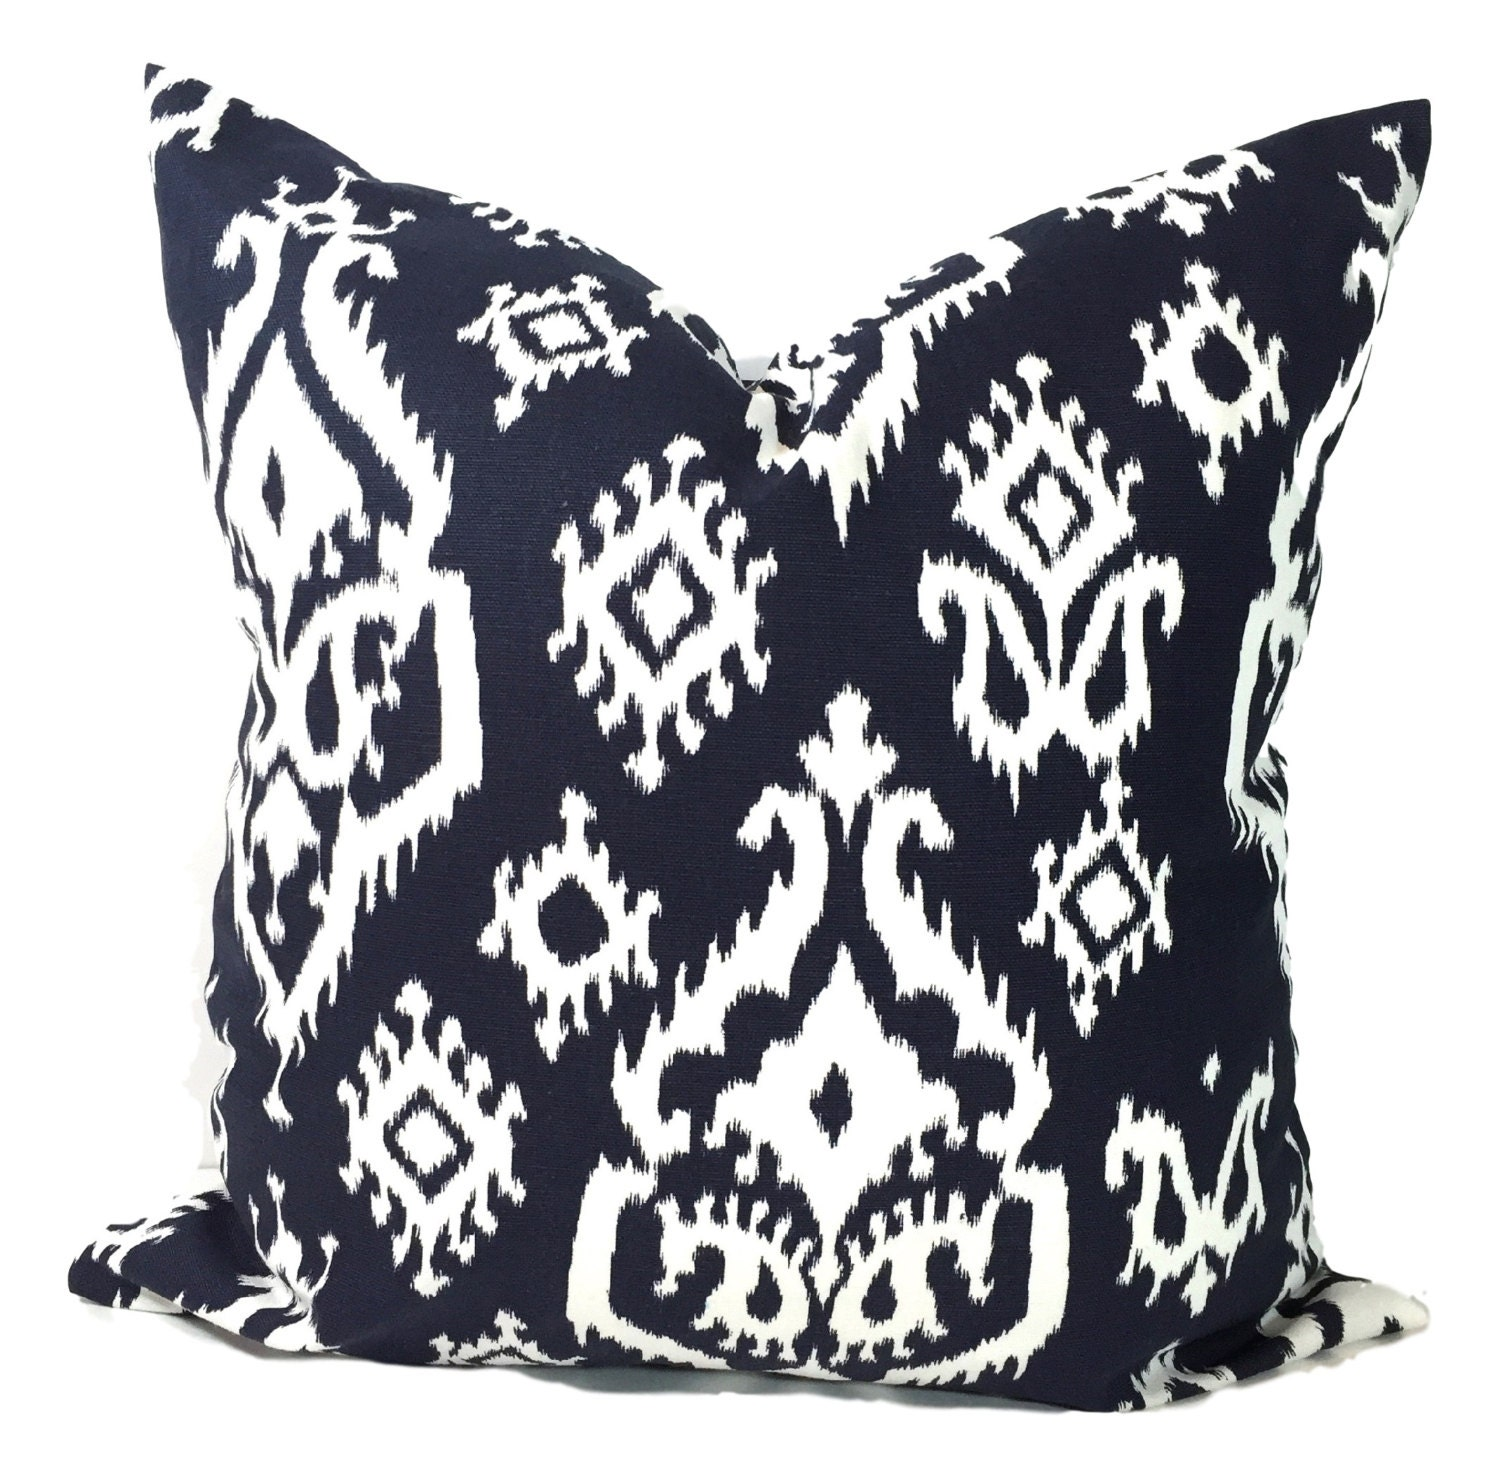 Decorative Pillows In Navy Blue : Navy Blue Pillows.Pillow Cover Decorative Pillow Throw